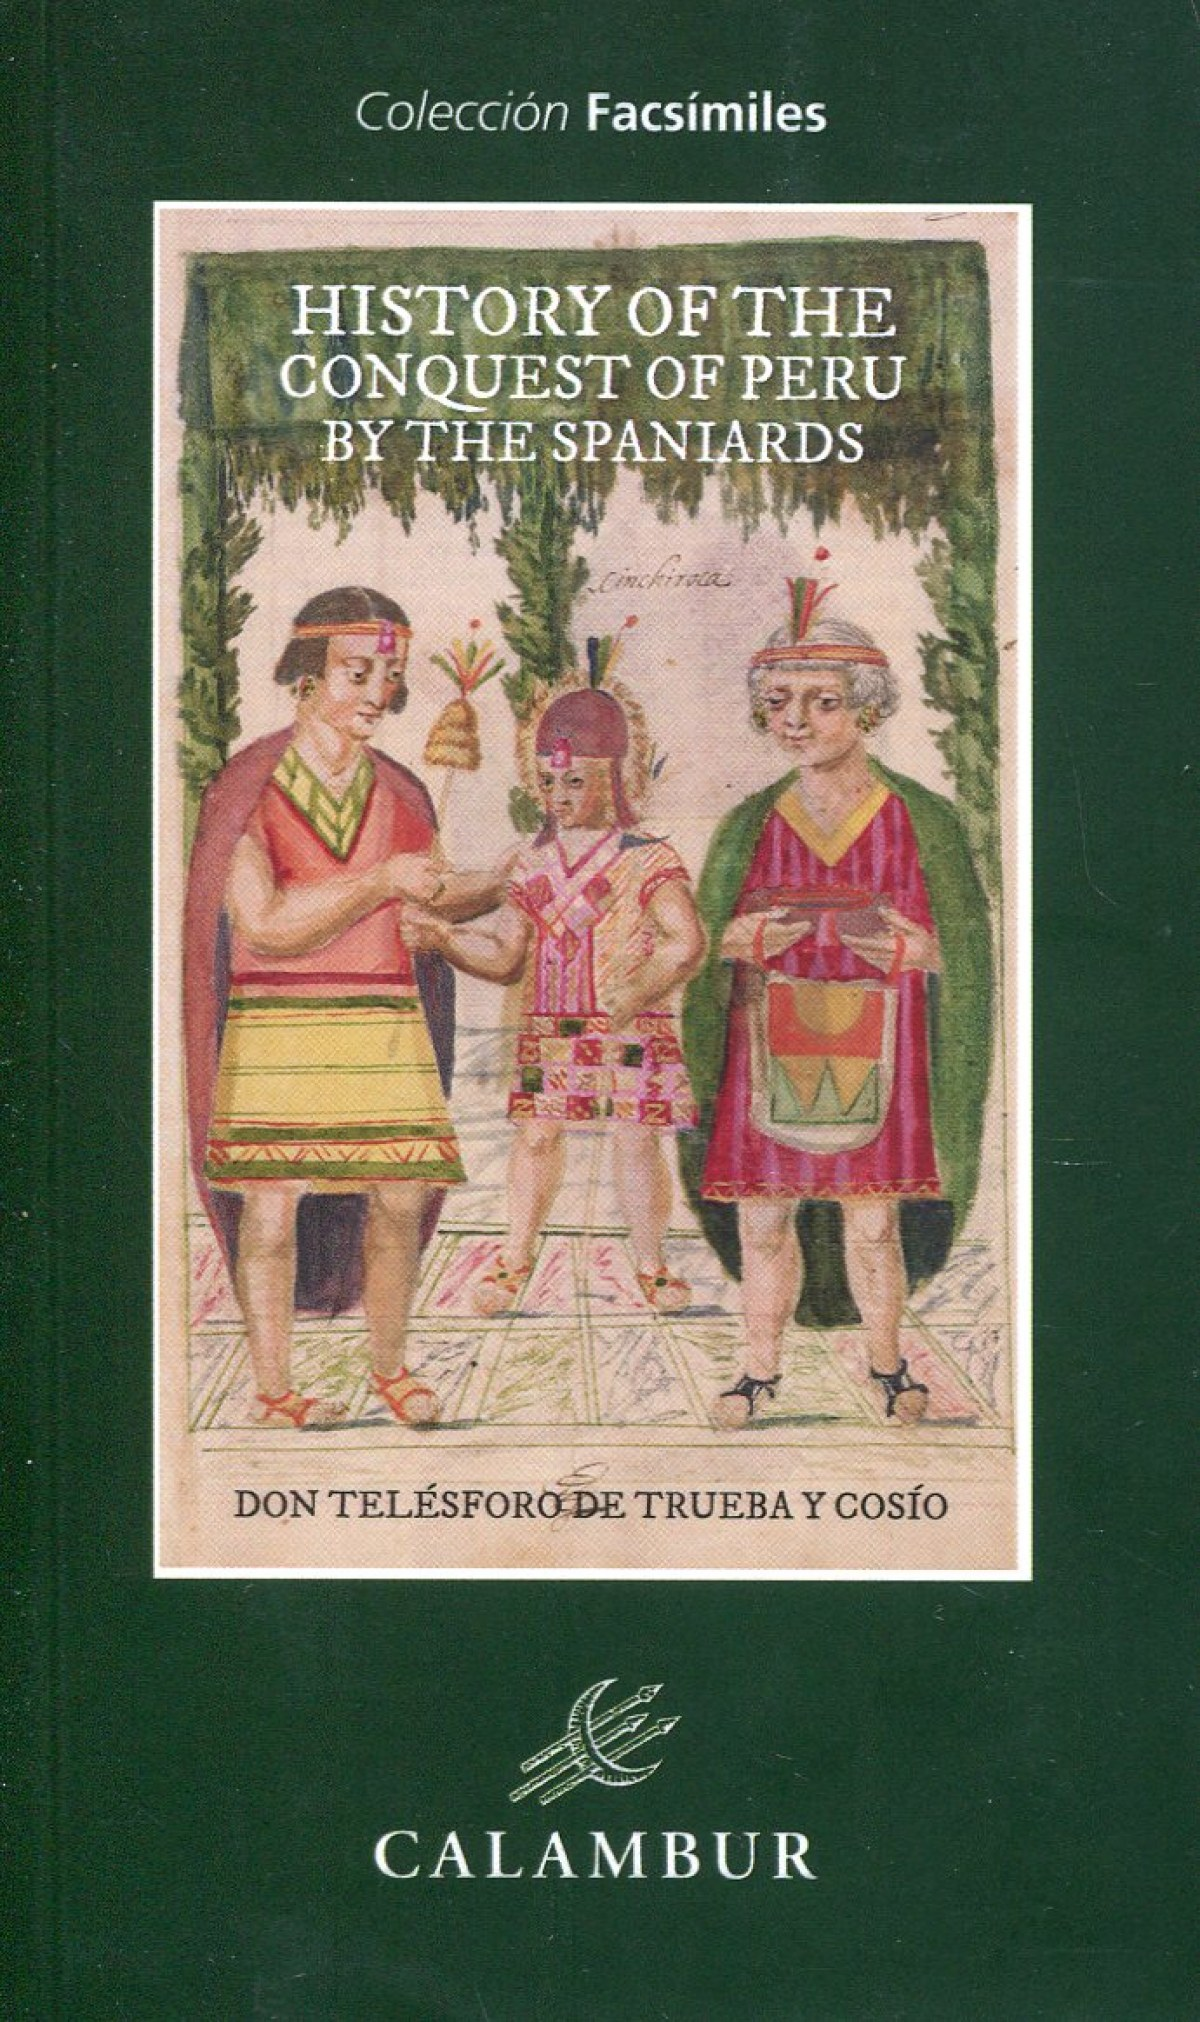 HISTORY OF THE CONQUEST OF PERU BY THE SPANIARDS 9788483595145